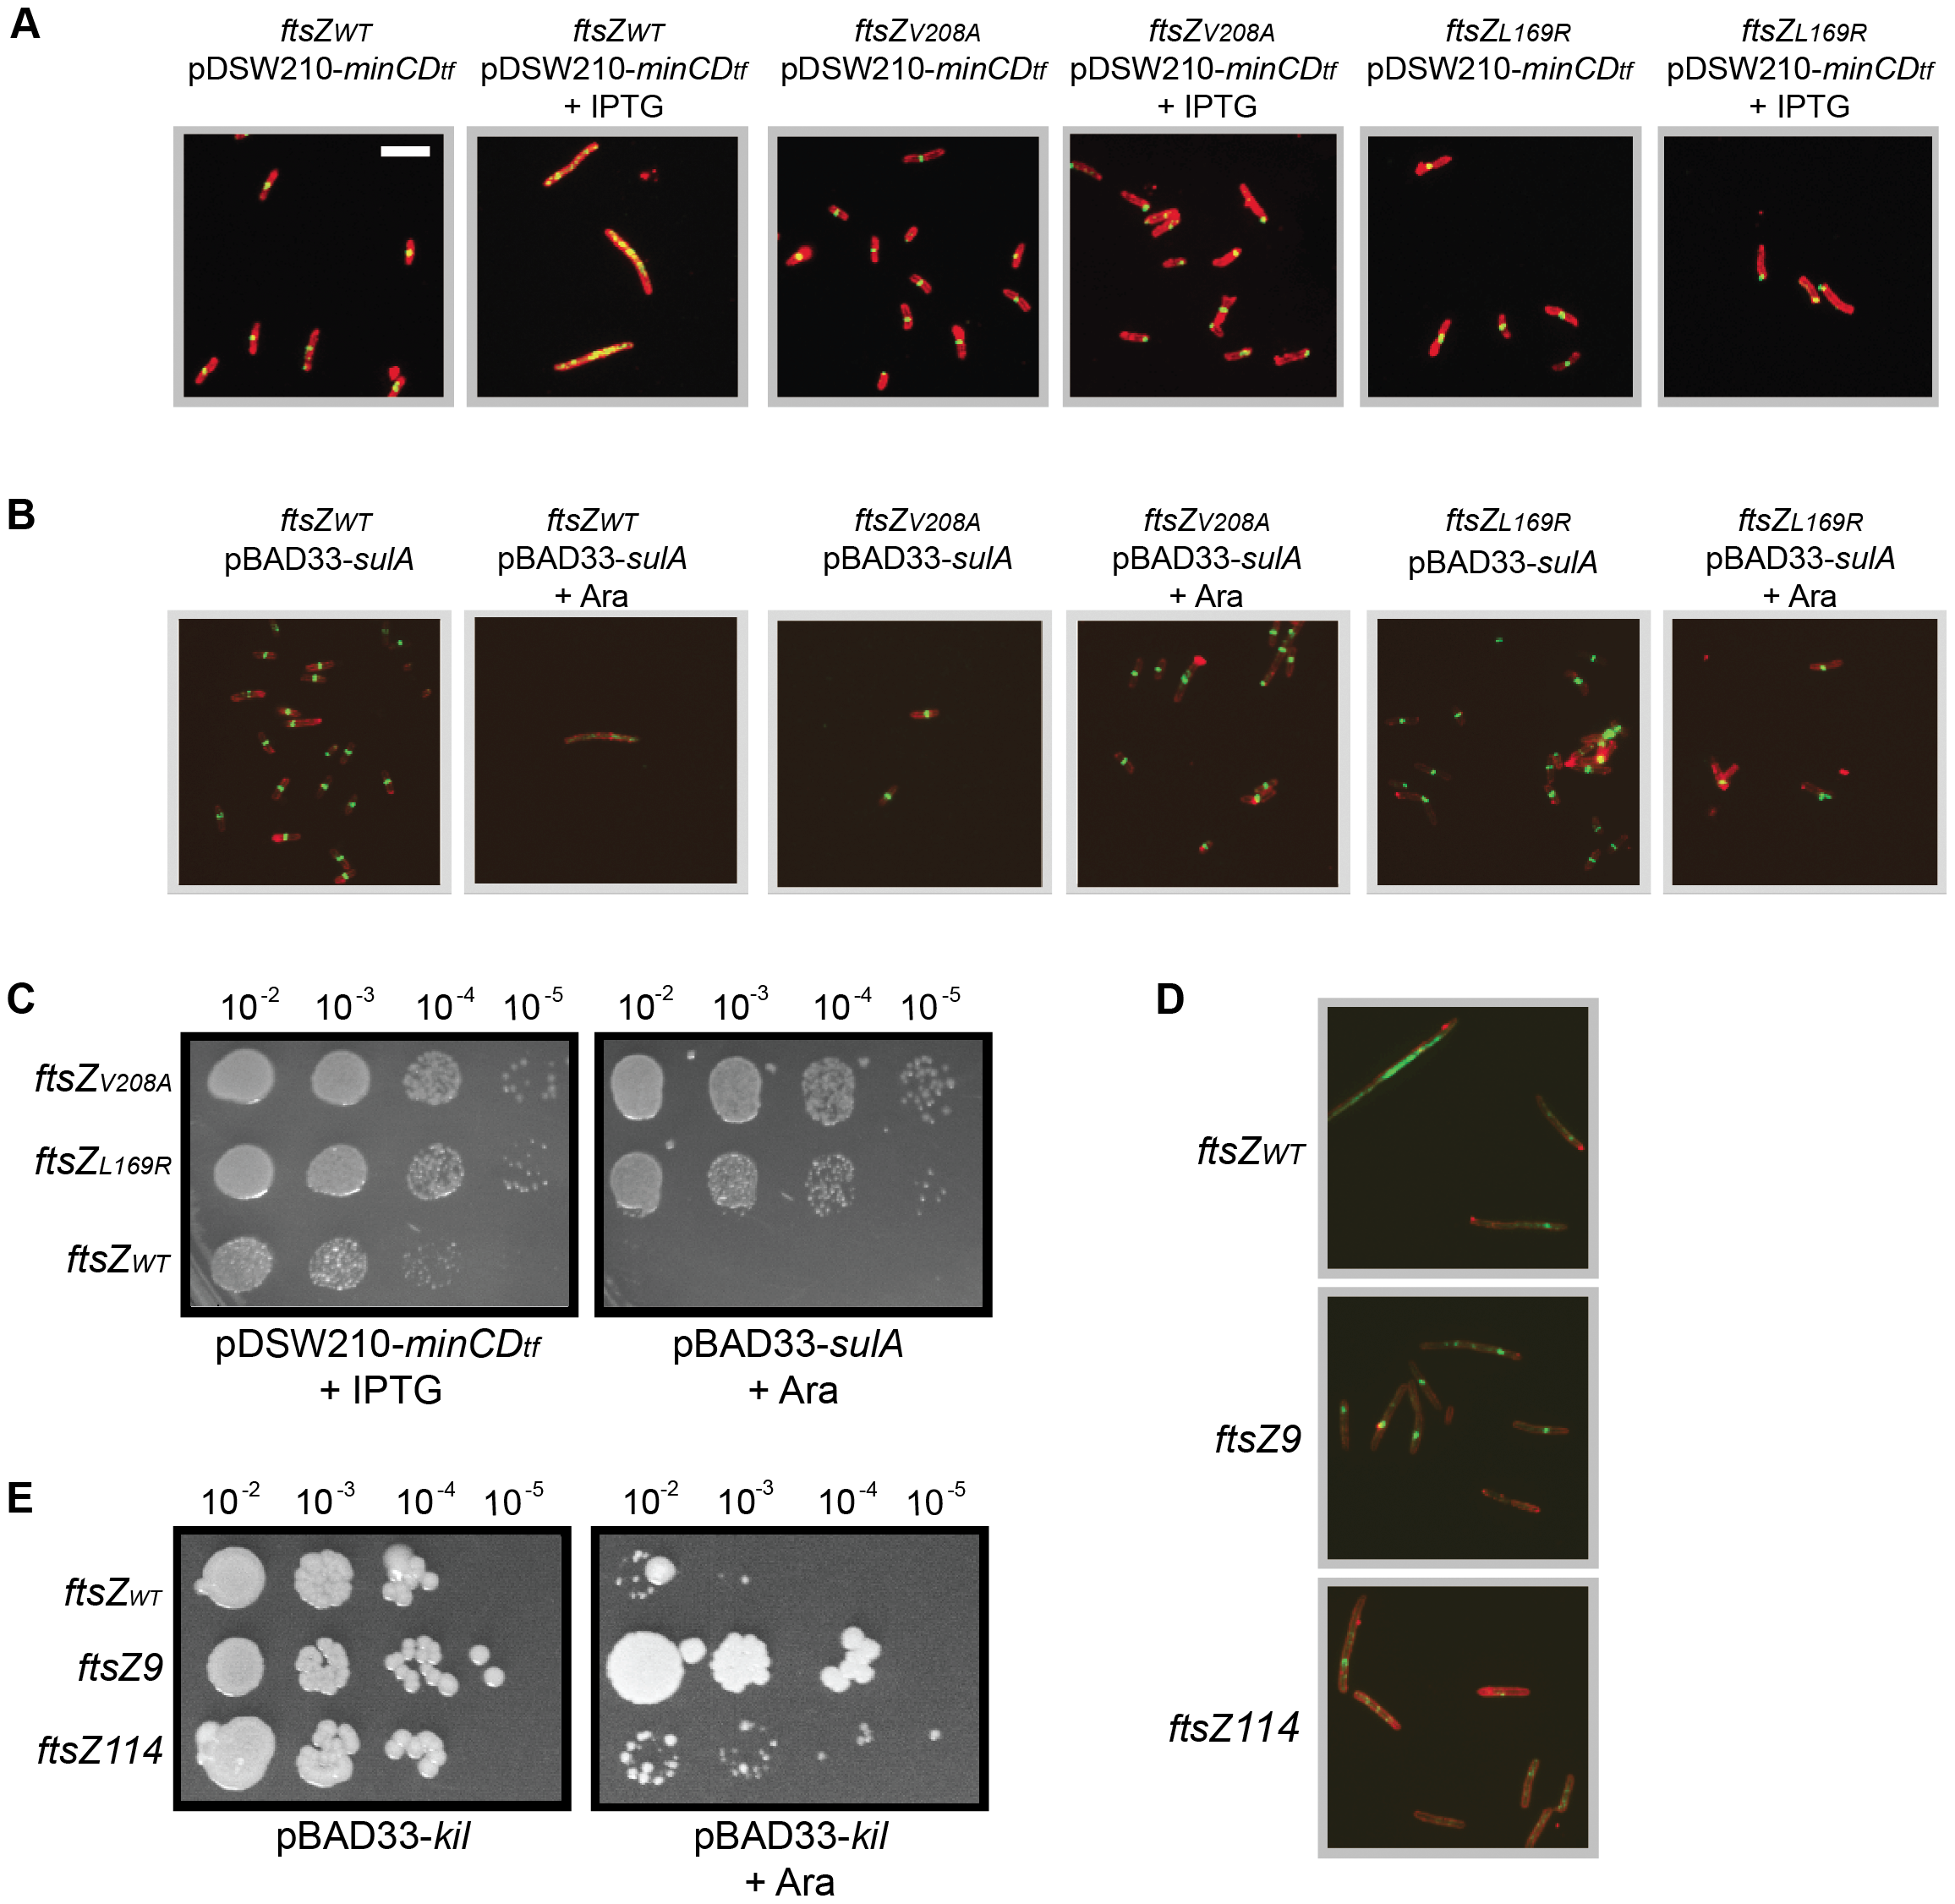 General resistance of isolated ftsZ alleles to assembly inhibition.